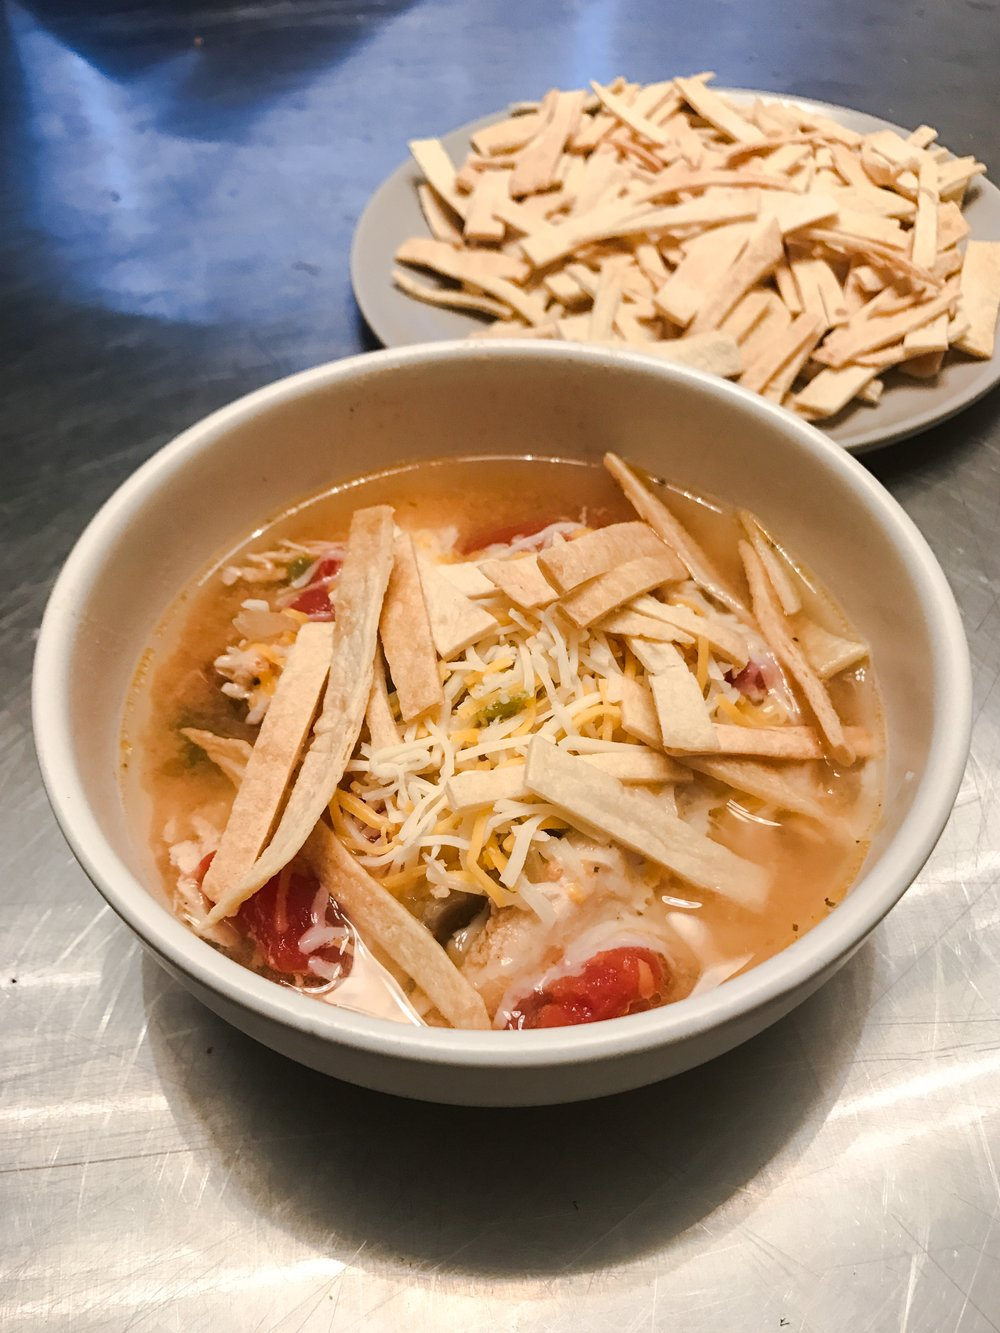 KETO RECIPE: LOW CARB CHICKEN TORTILLA SOUP by Jen Fisch via Keto In The City